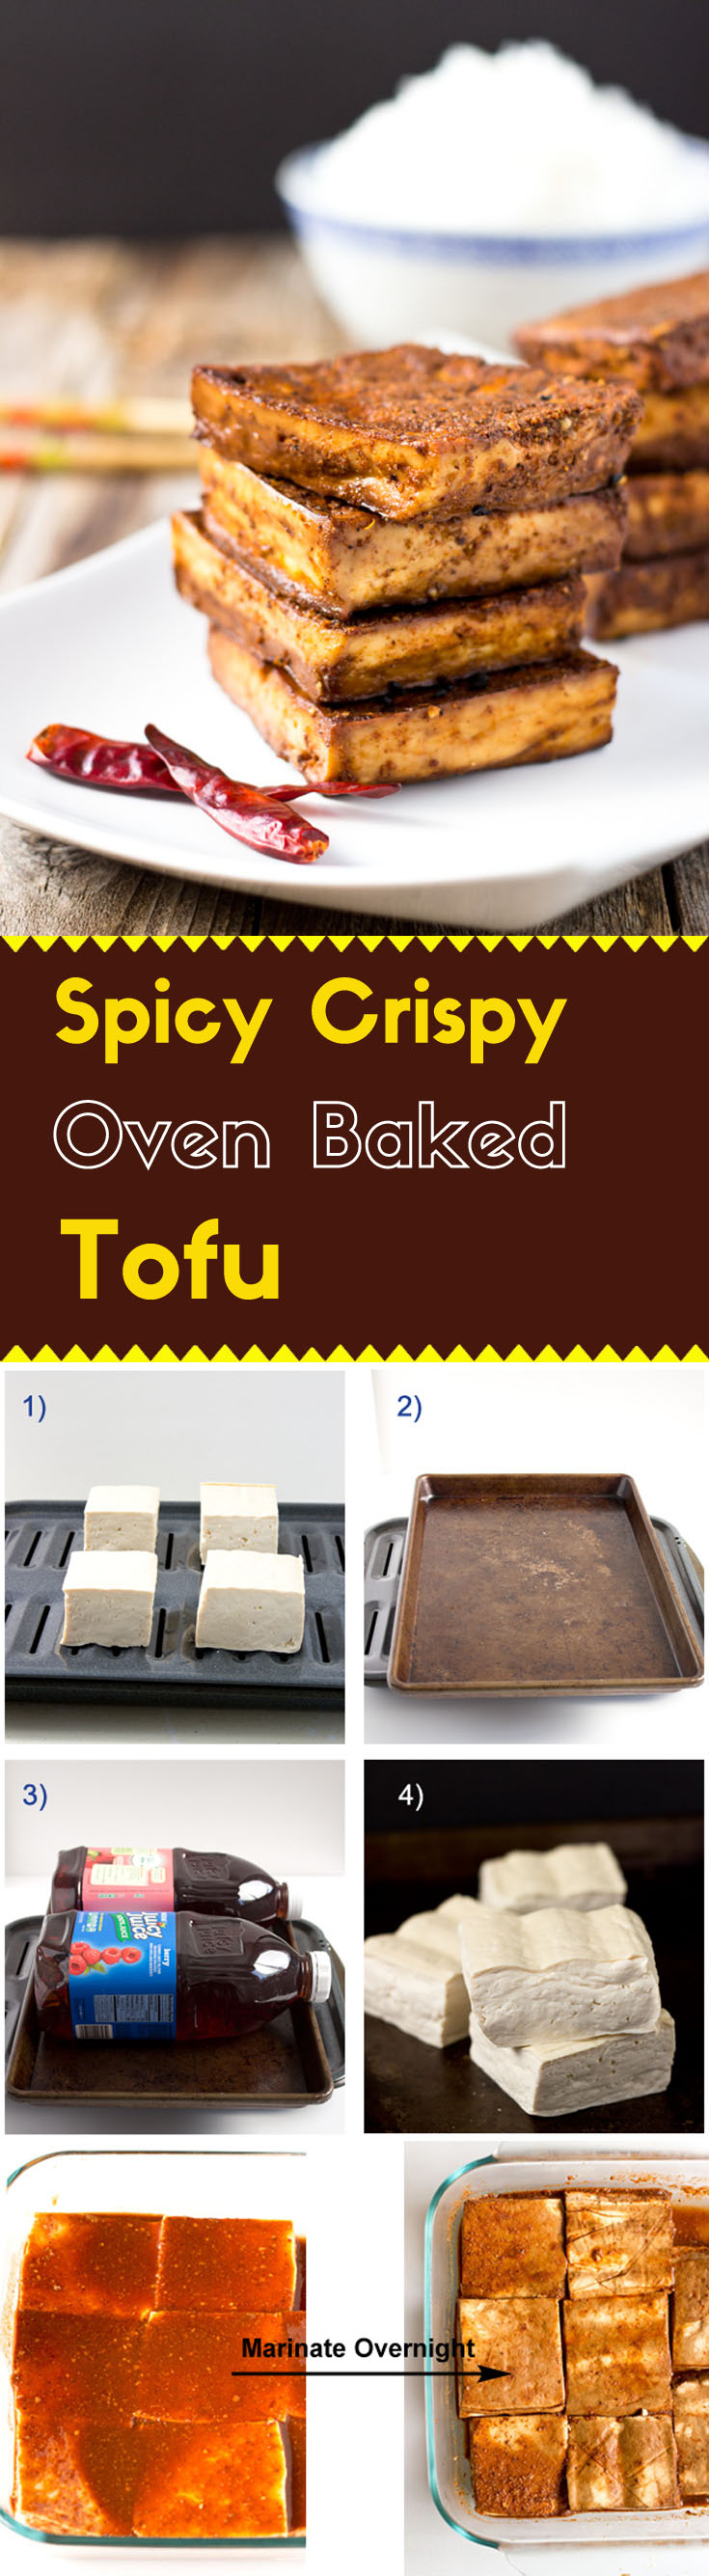 These oven baked tofu blocks are perfectly seasoned with Sichuan style spices and have a fantastic tender chewy texture. (#glutenfree #glutenfreeAsian #glutenfreetofu #vegan #glutenfreevegan #vegantofu #vegandinner #healthysnacks #bakedtofu #spicytofu #Chineserecipe)